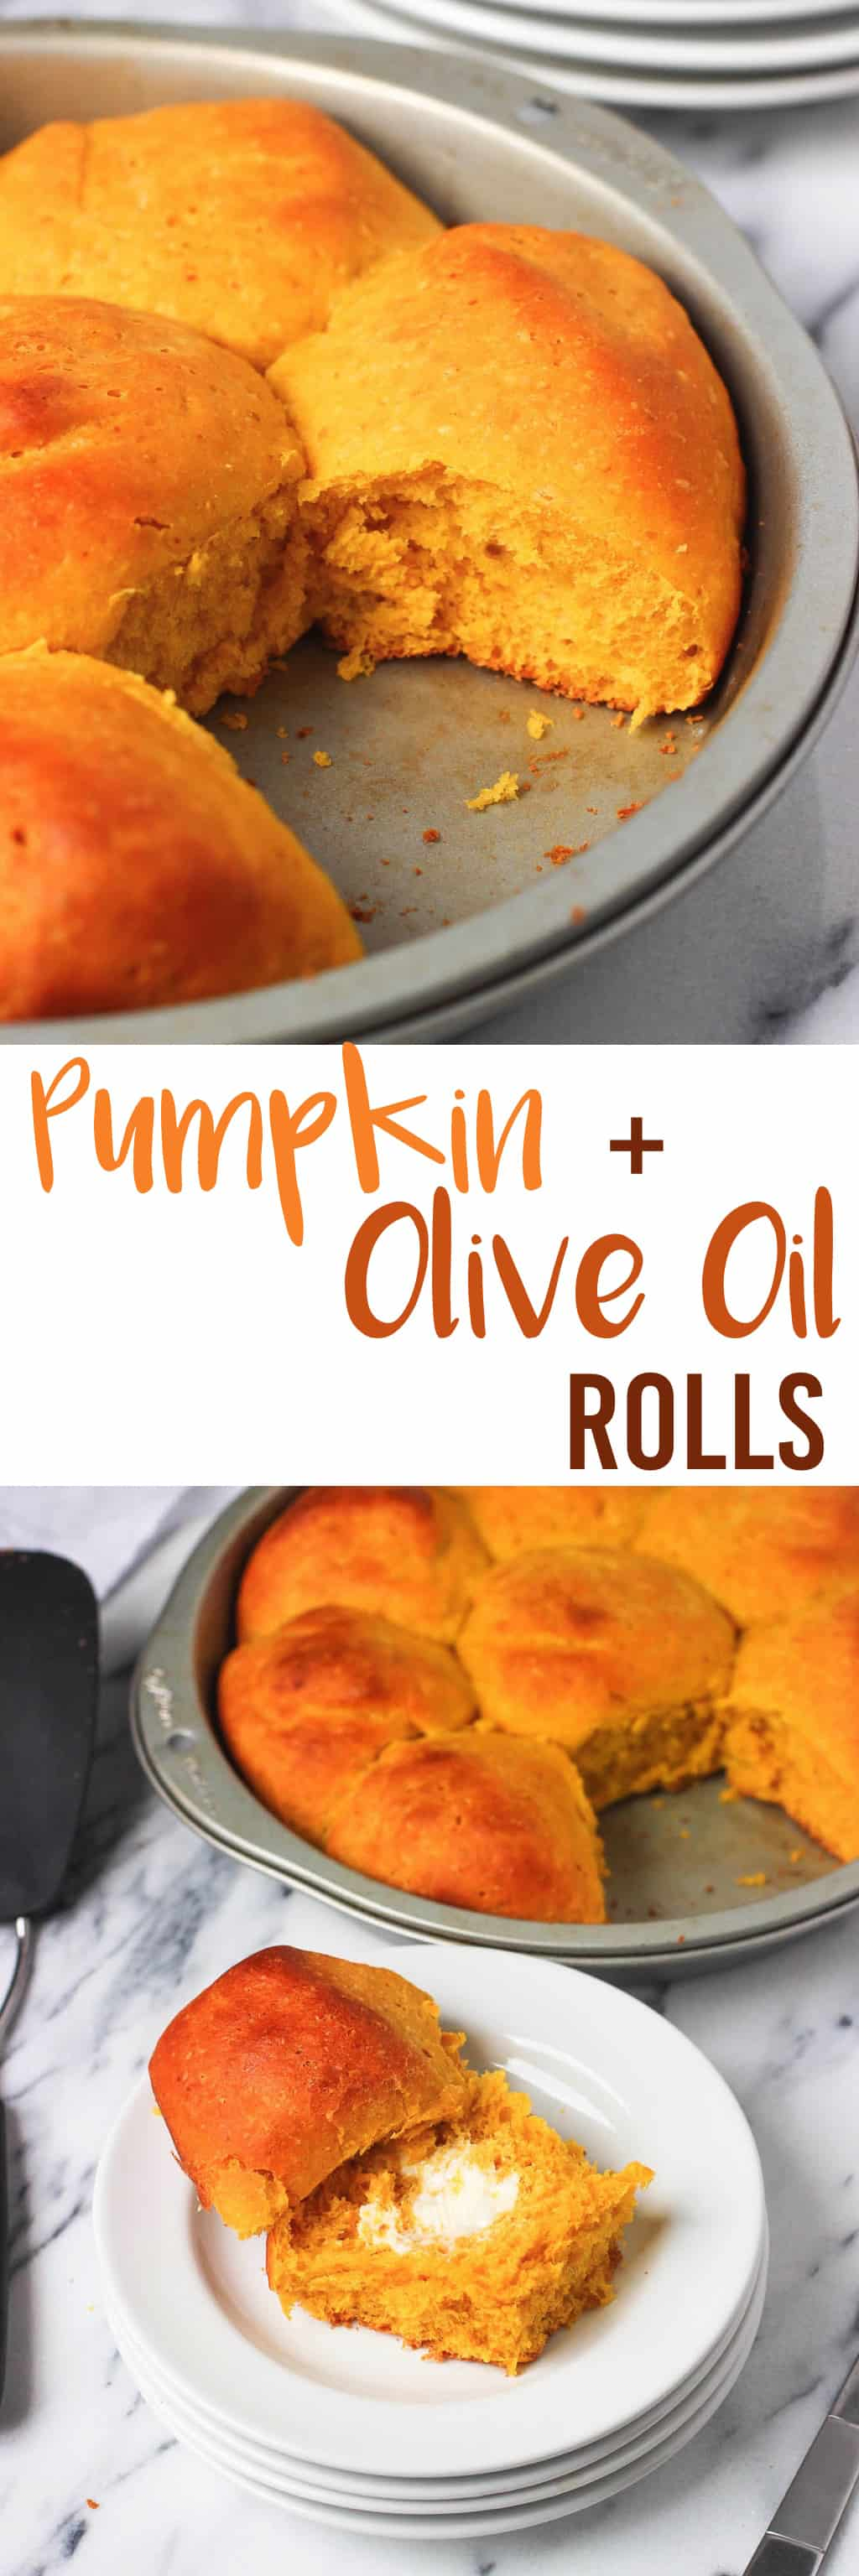 Pumpkin Olive Oil Rolls - tender and fluffy dinner rolls featuring pumpkin puree and olive oil! mysequinedlife.com